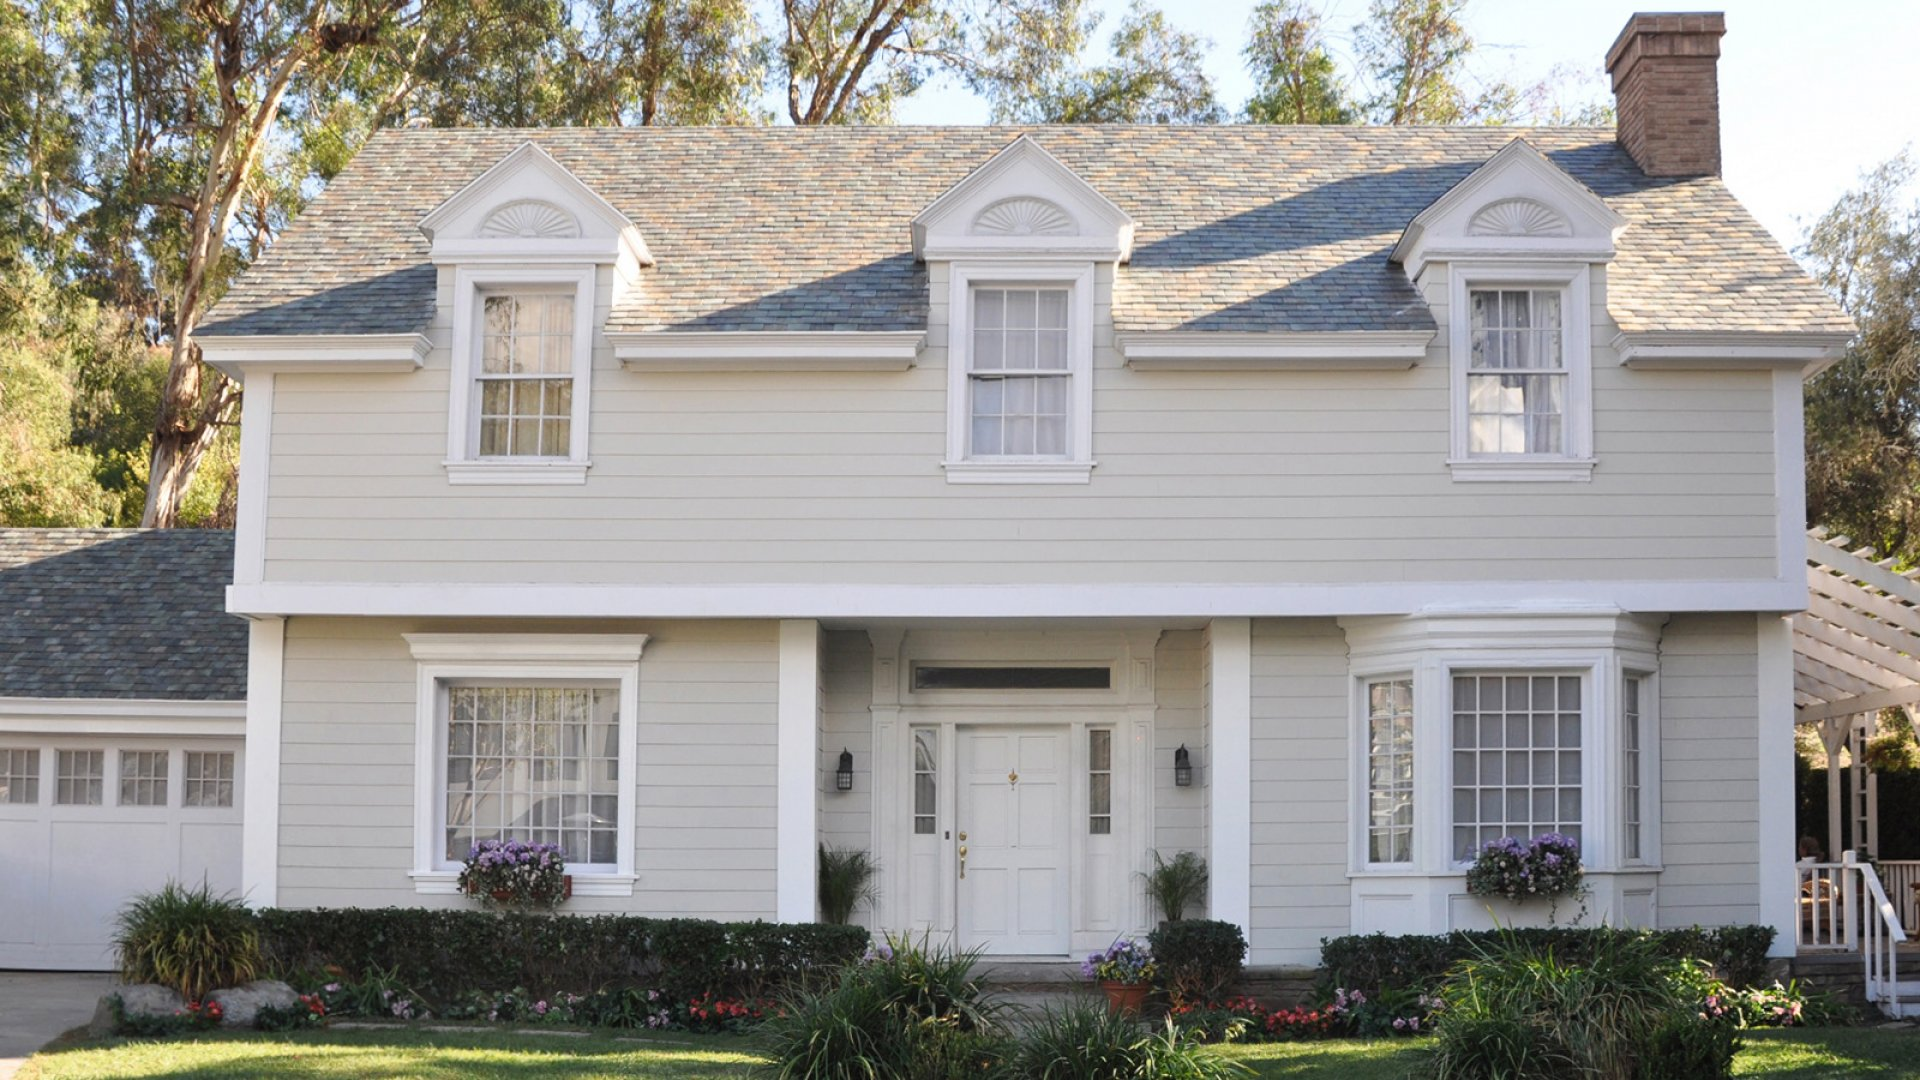 A home with a newly installed Tesla solar roof.